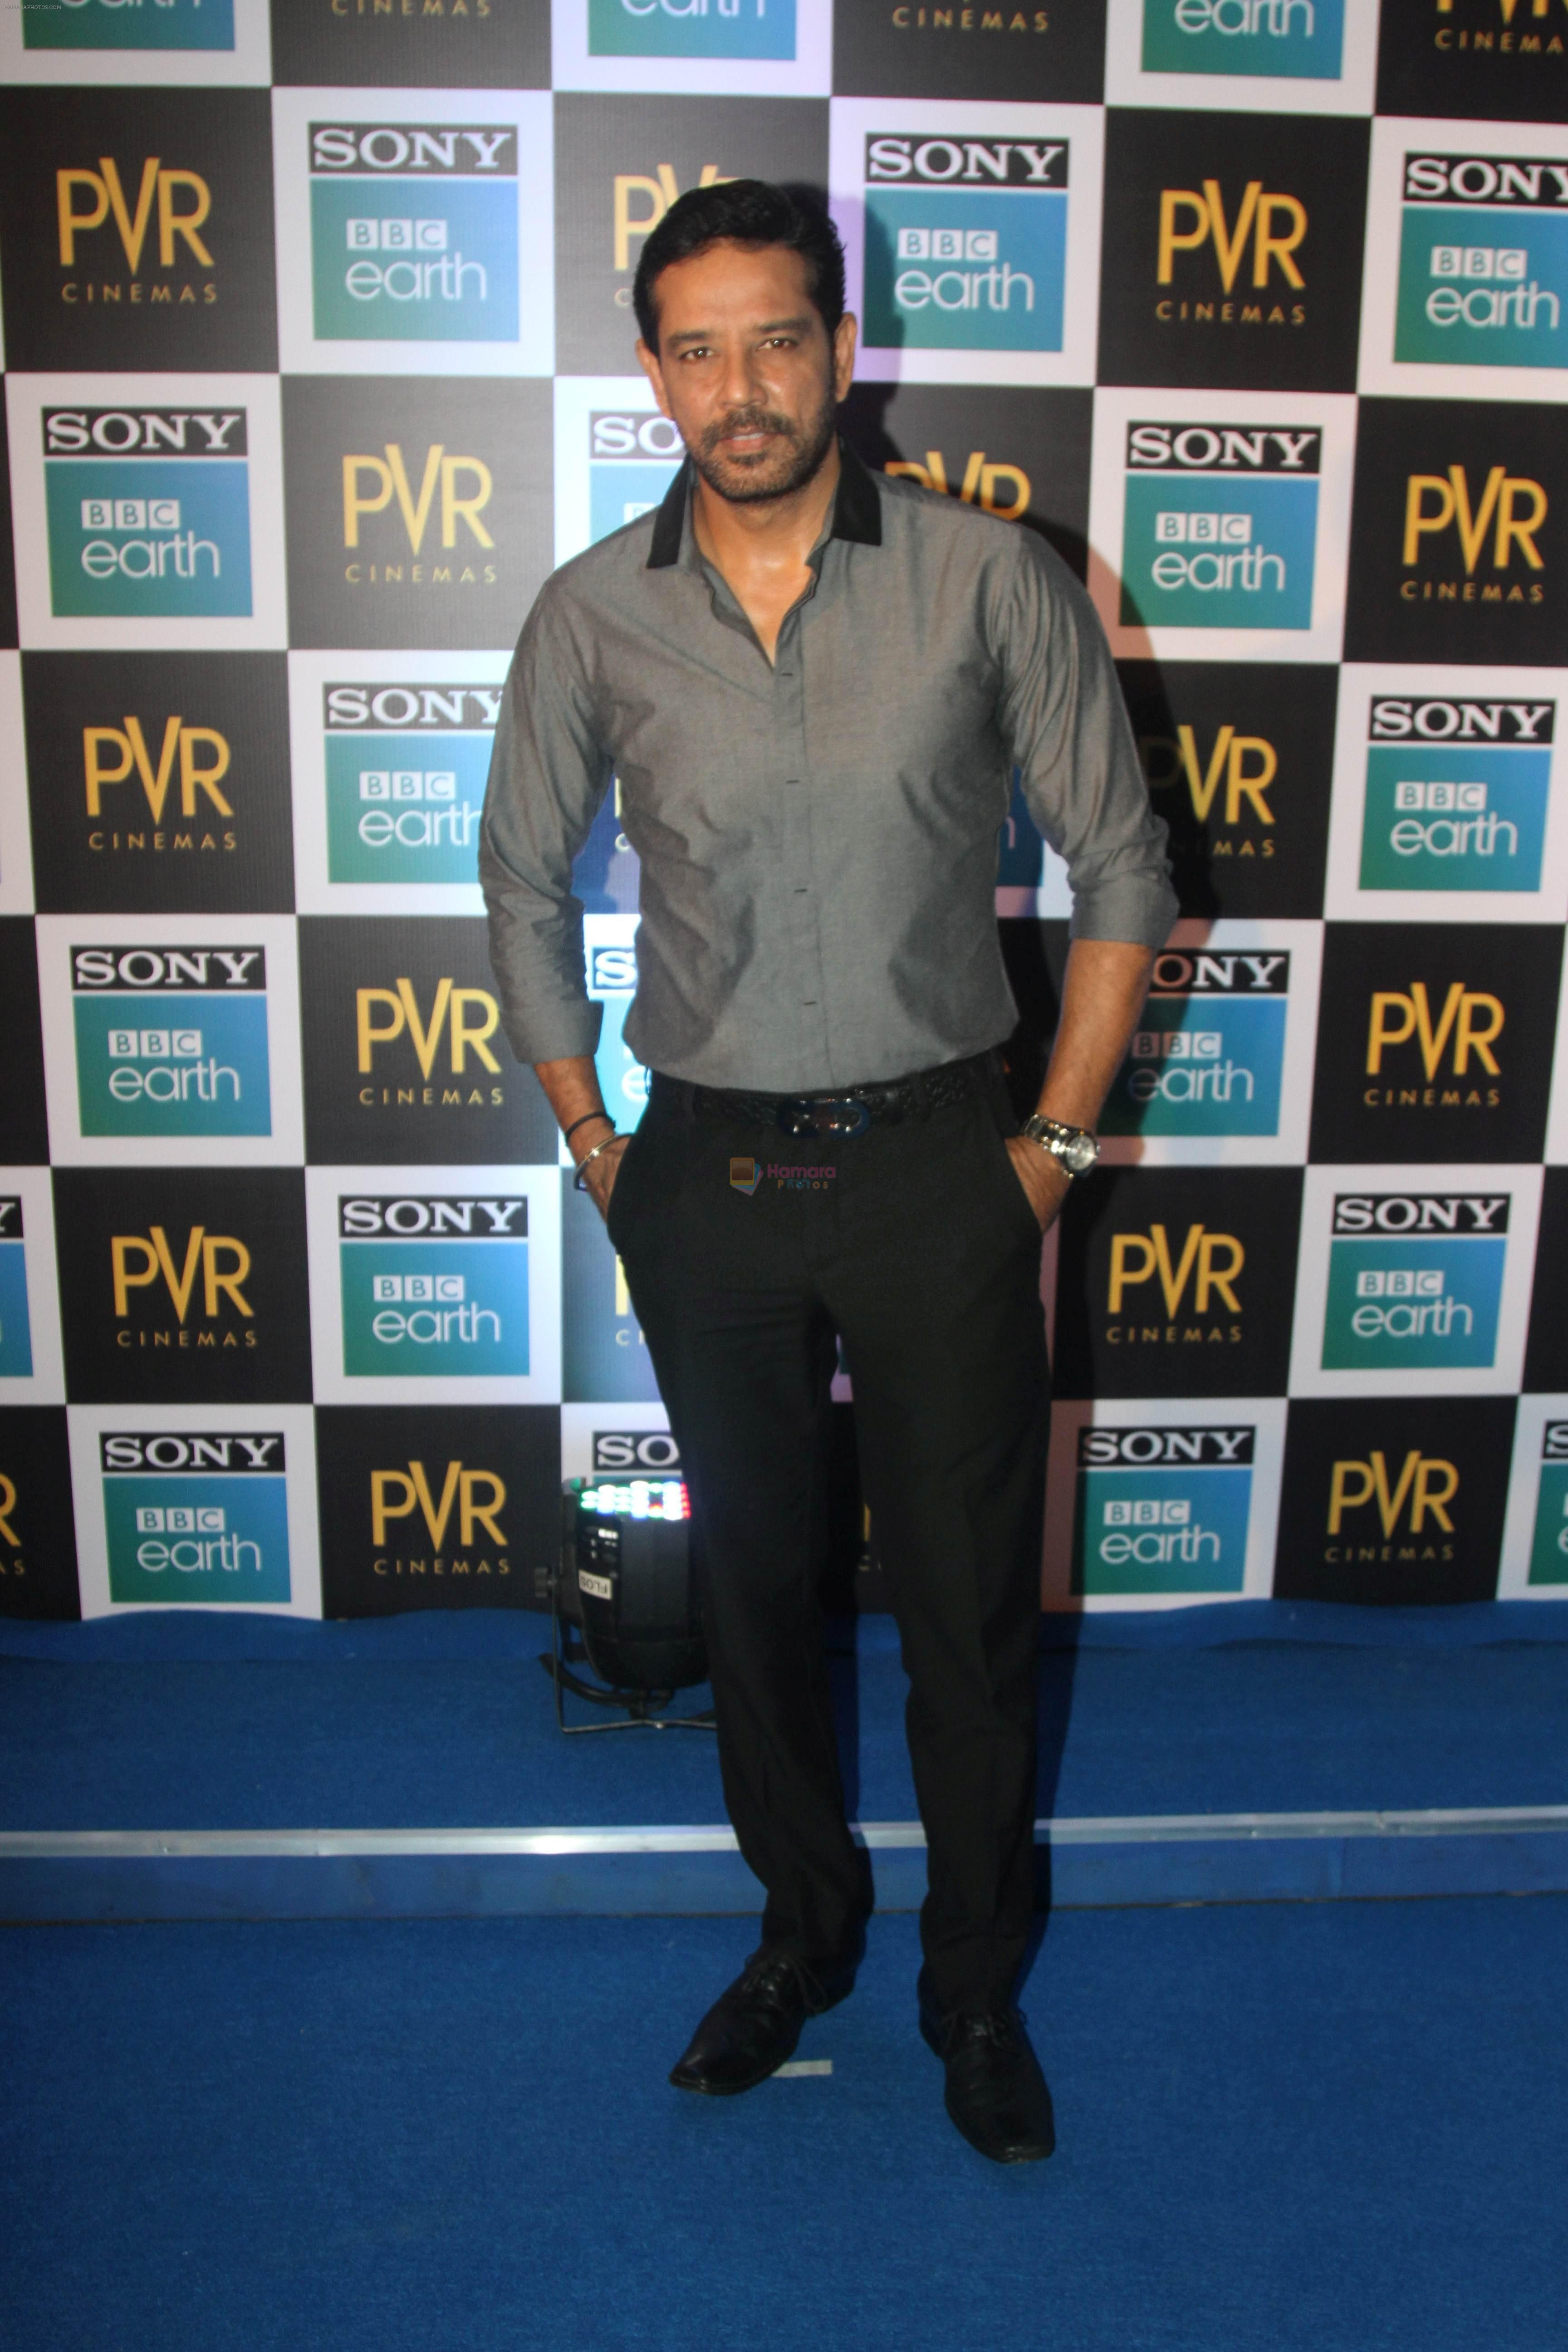 Anup Soni at the Screening of Sony BBC Earth's film Blue Planet 2 at pvr icon in andheri on 15th May 2018